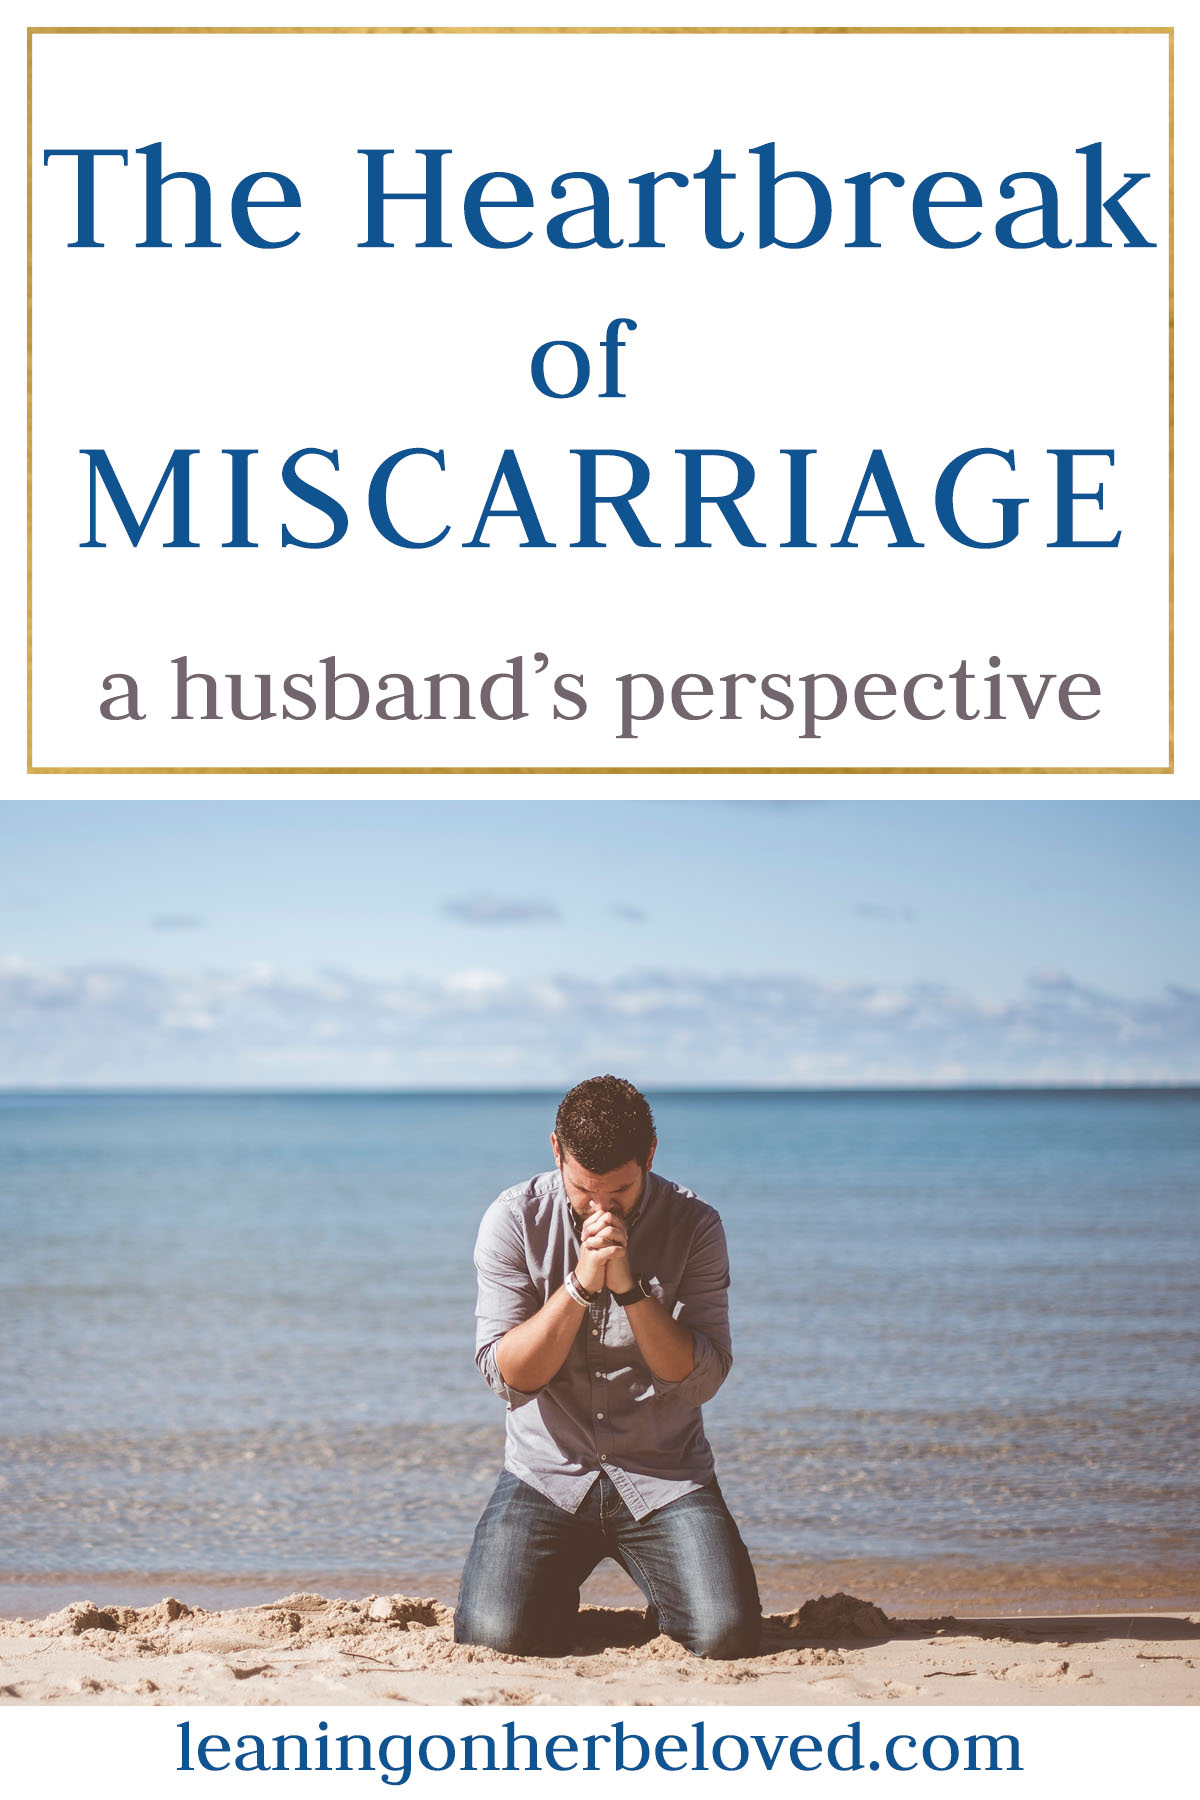 It is difficult to understand Miscarriage and even more difficult to understand grief. It is important for husbands and wives to see and understand each others grief so that they can give them grace in this difficult time. | #miscarriage | #grief